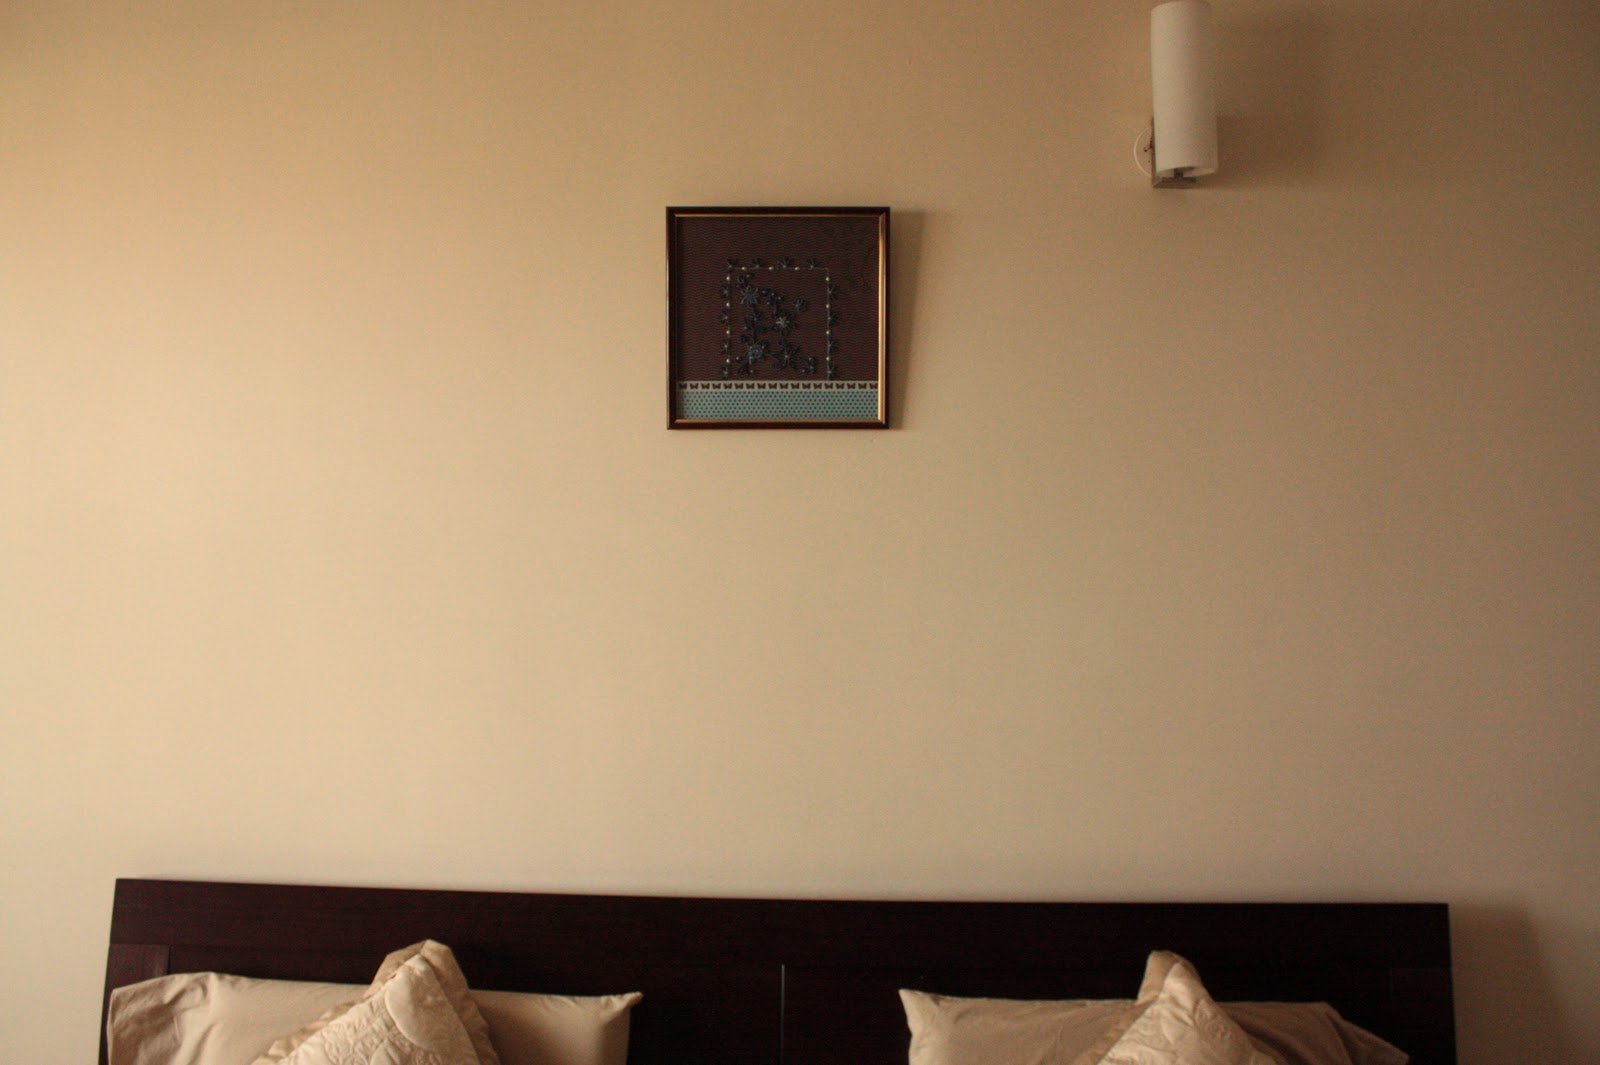 Simz Corner: Before and After - Master bedroom wall art